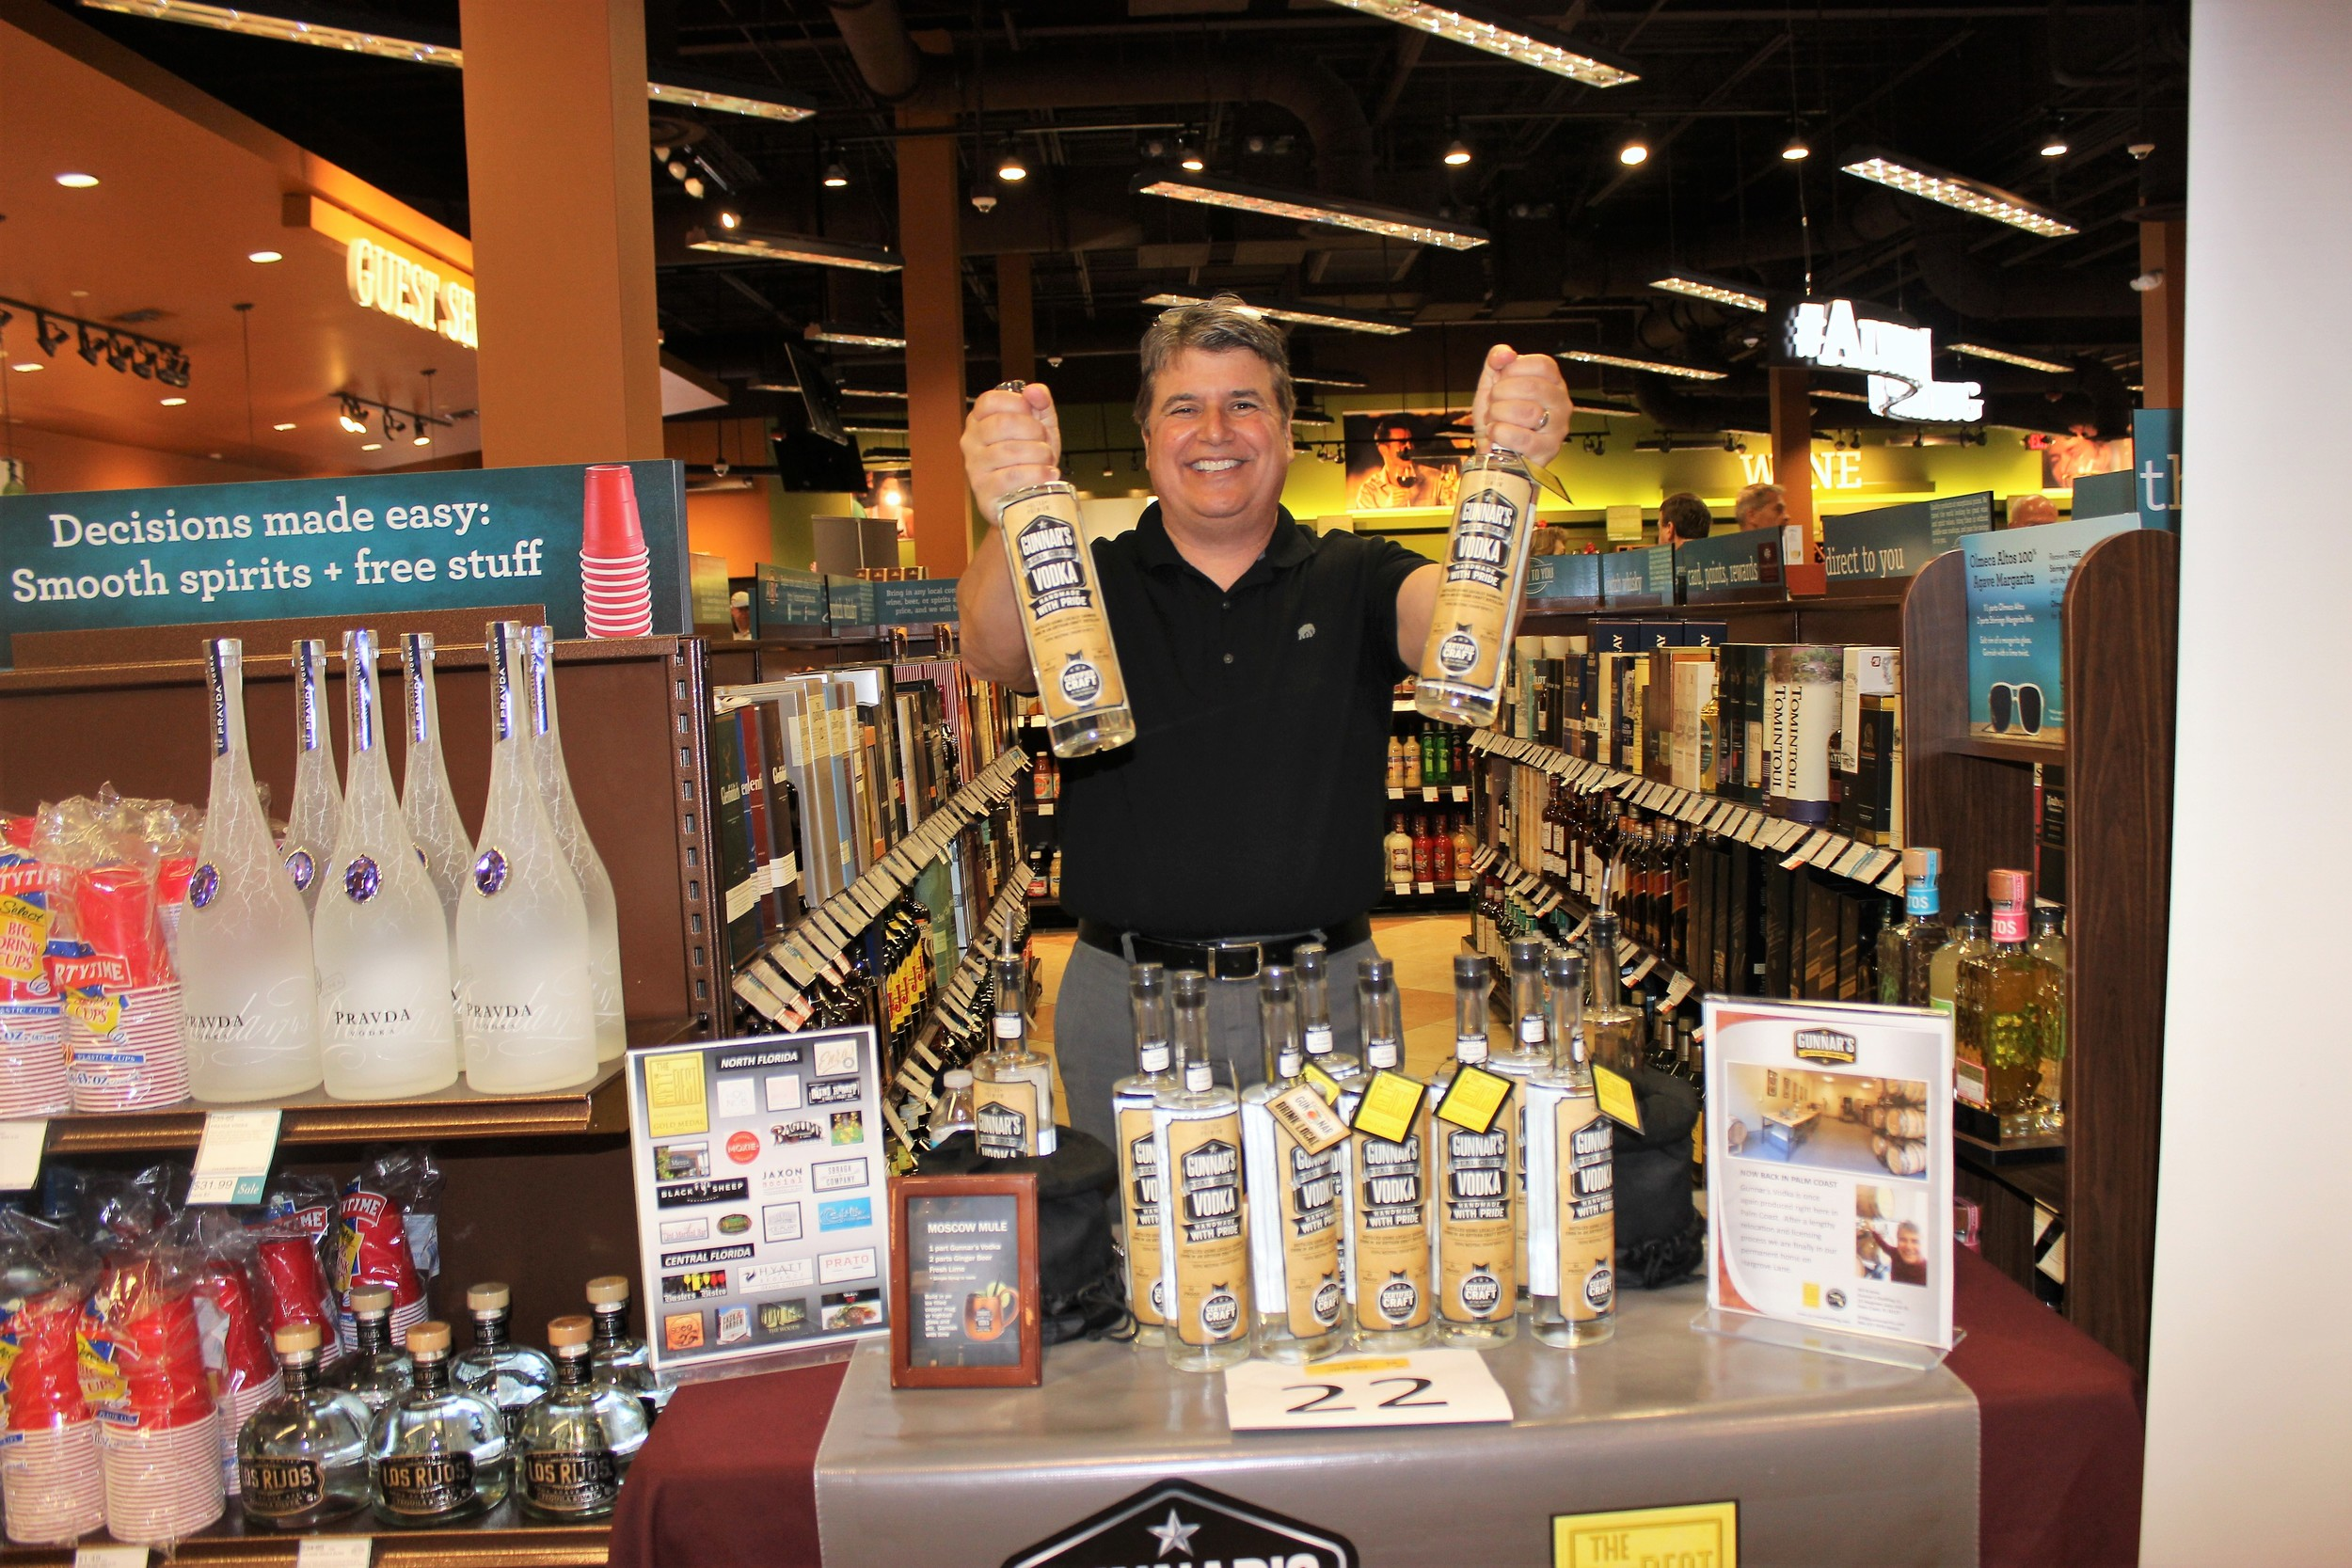 Gunnar's Distilling Company of Palm Coast was among the vendors participating in the event.